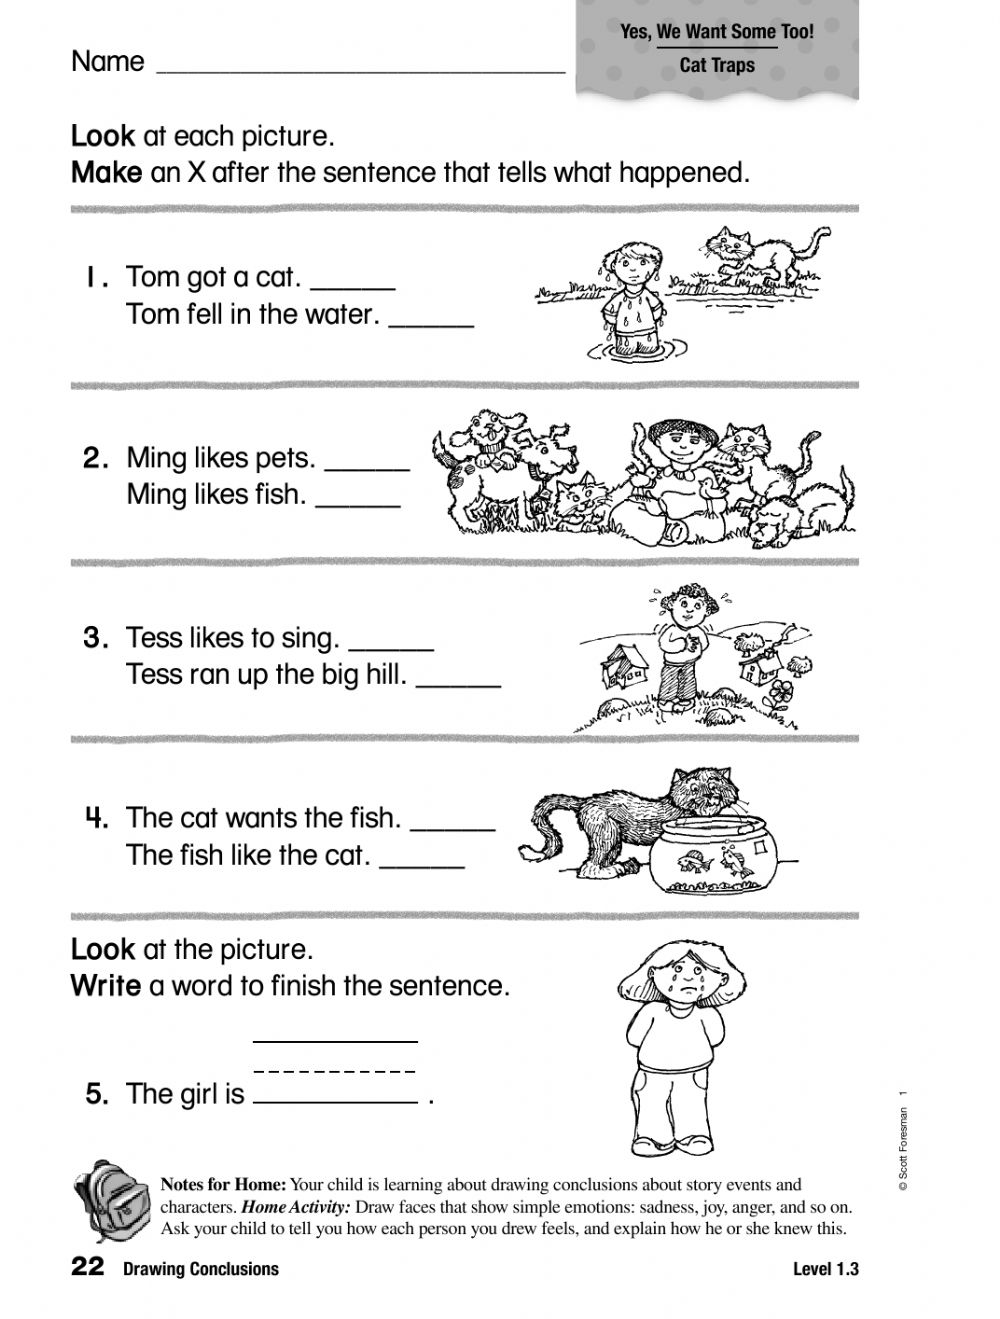 medium resolution of Drawing Conclusions interactive worksheet